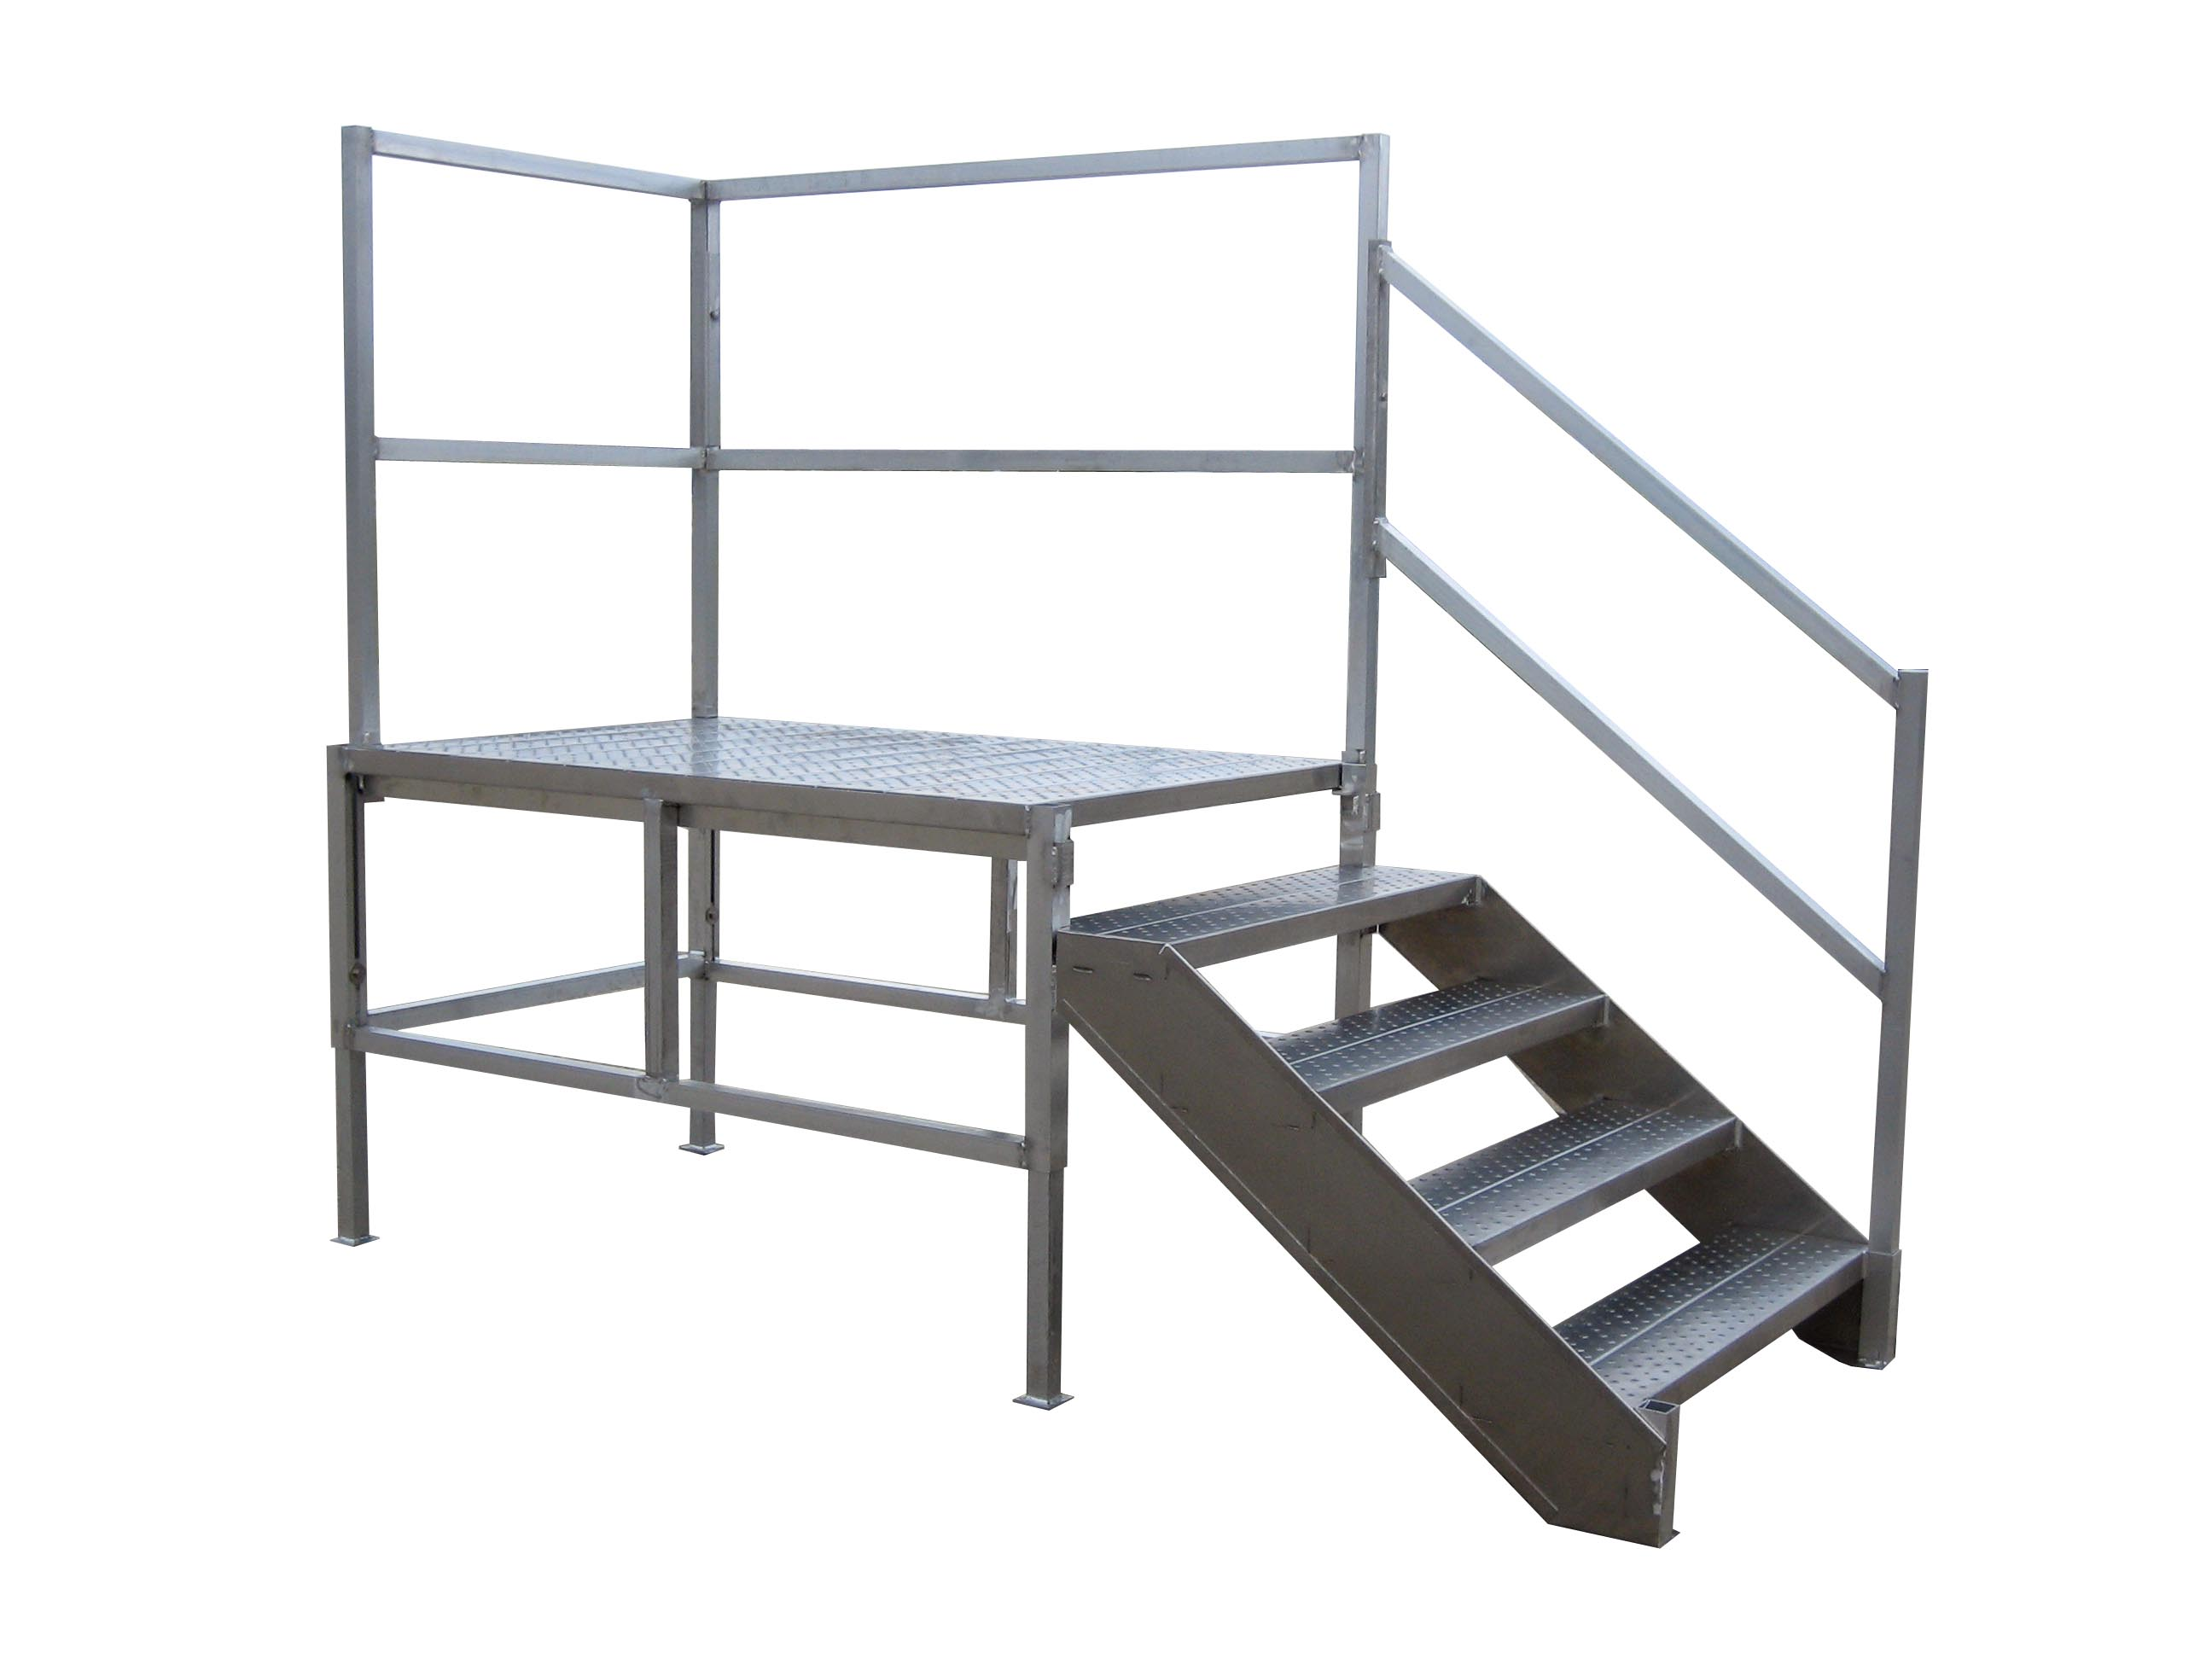 Flex Step Stair System U2013 Codes Met